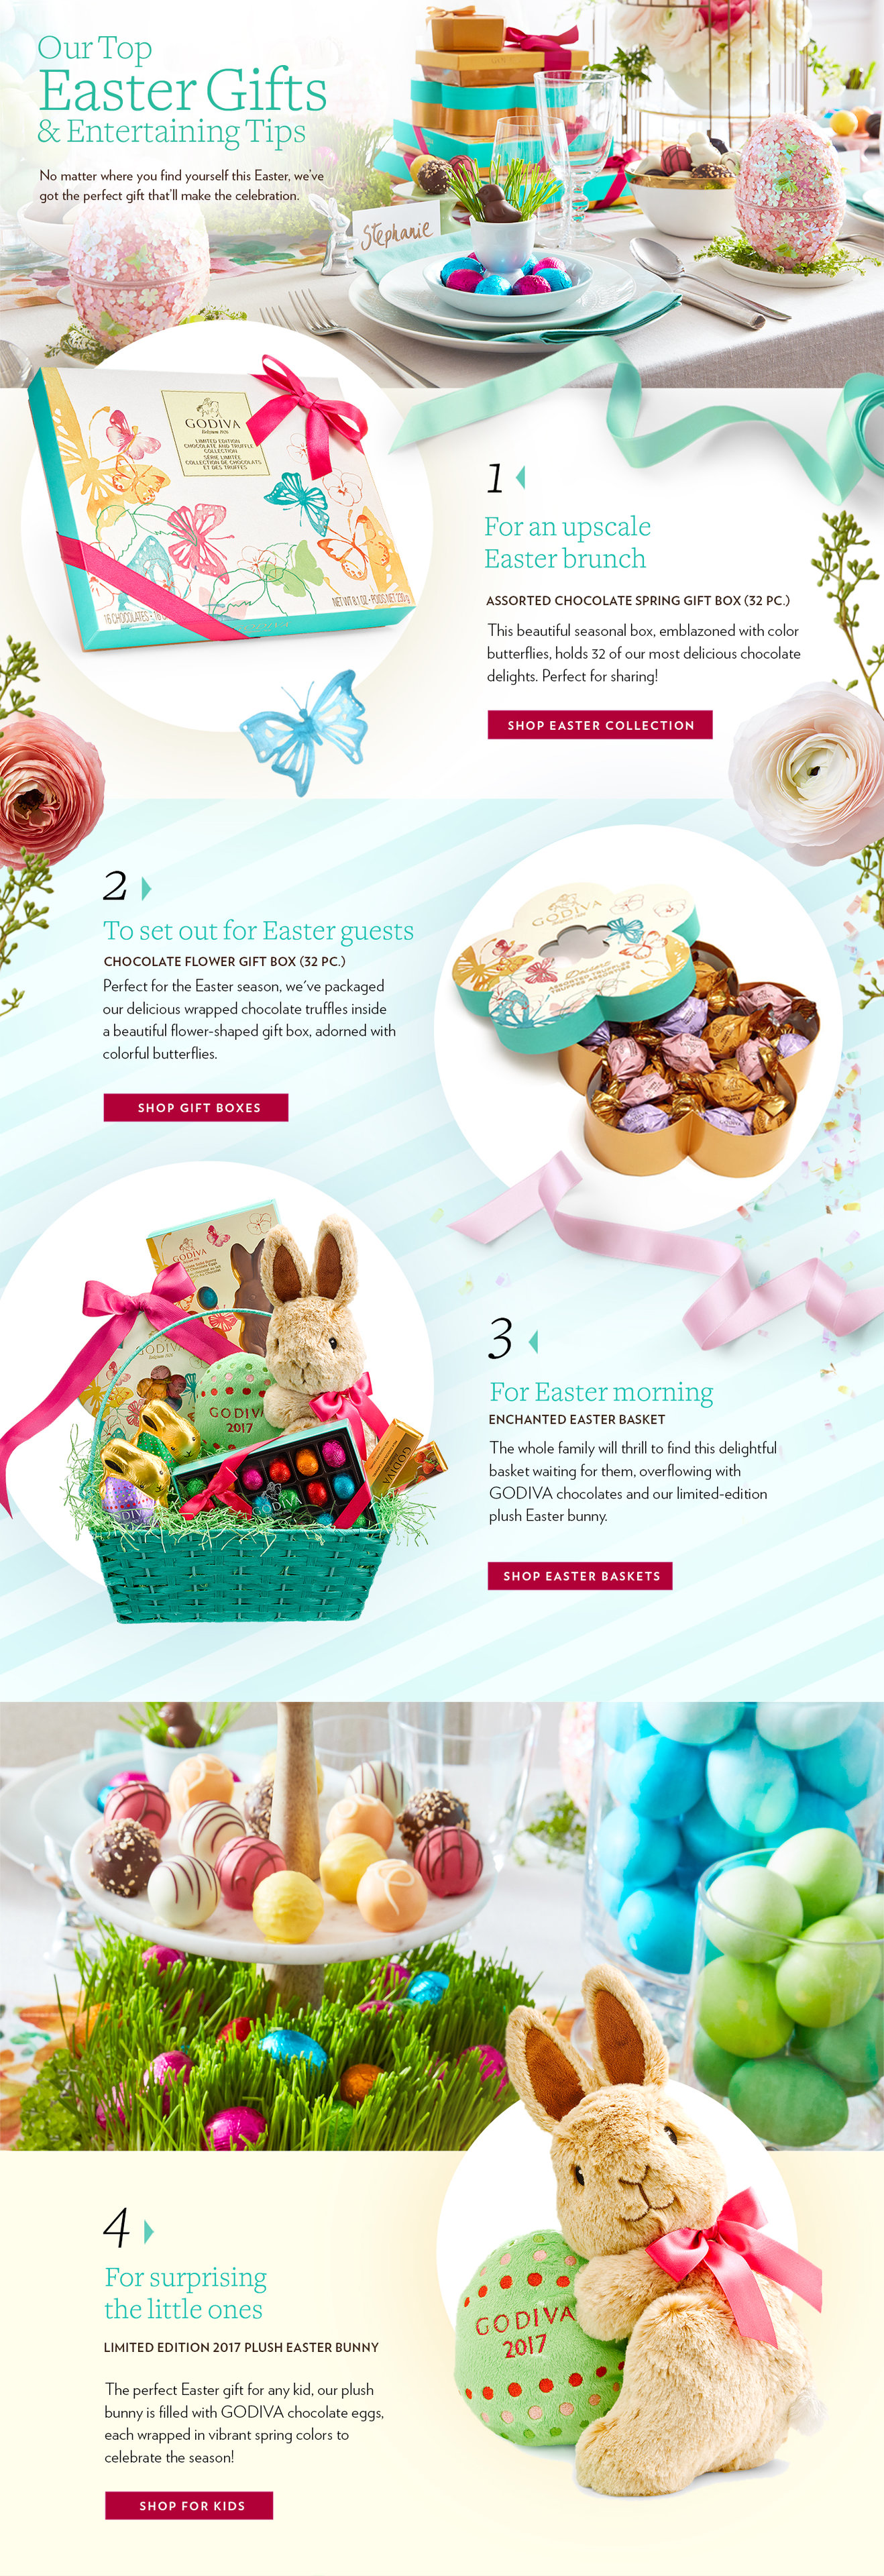 Easter chocolate gift ideas for every occasion godiva easter gift guide by occasion 0328godivaspringgiftguiderevfinaltop 0328godivaspringgiftguiderevfinalbottom negle Images